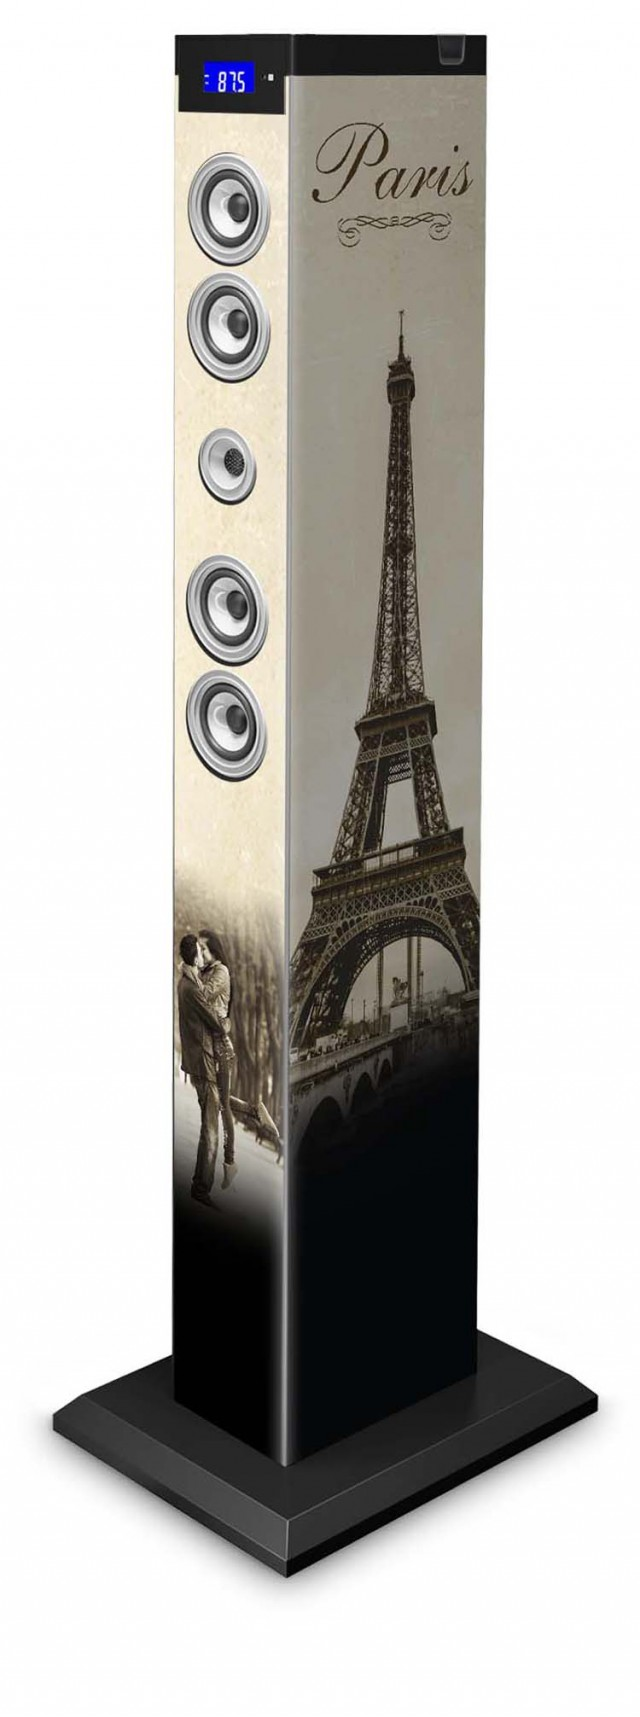 Tour Multimédia Paris - Packshot